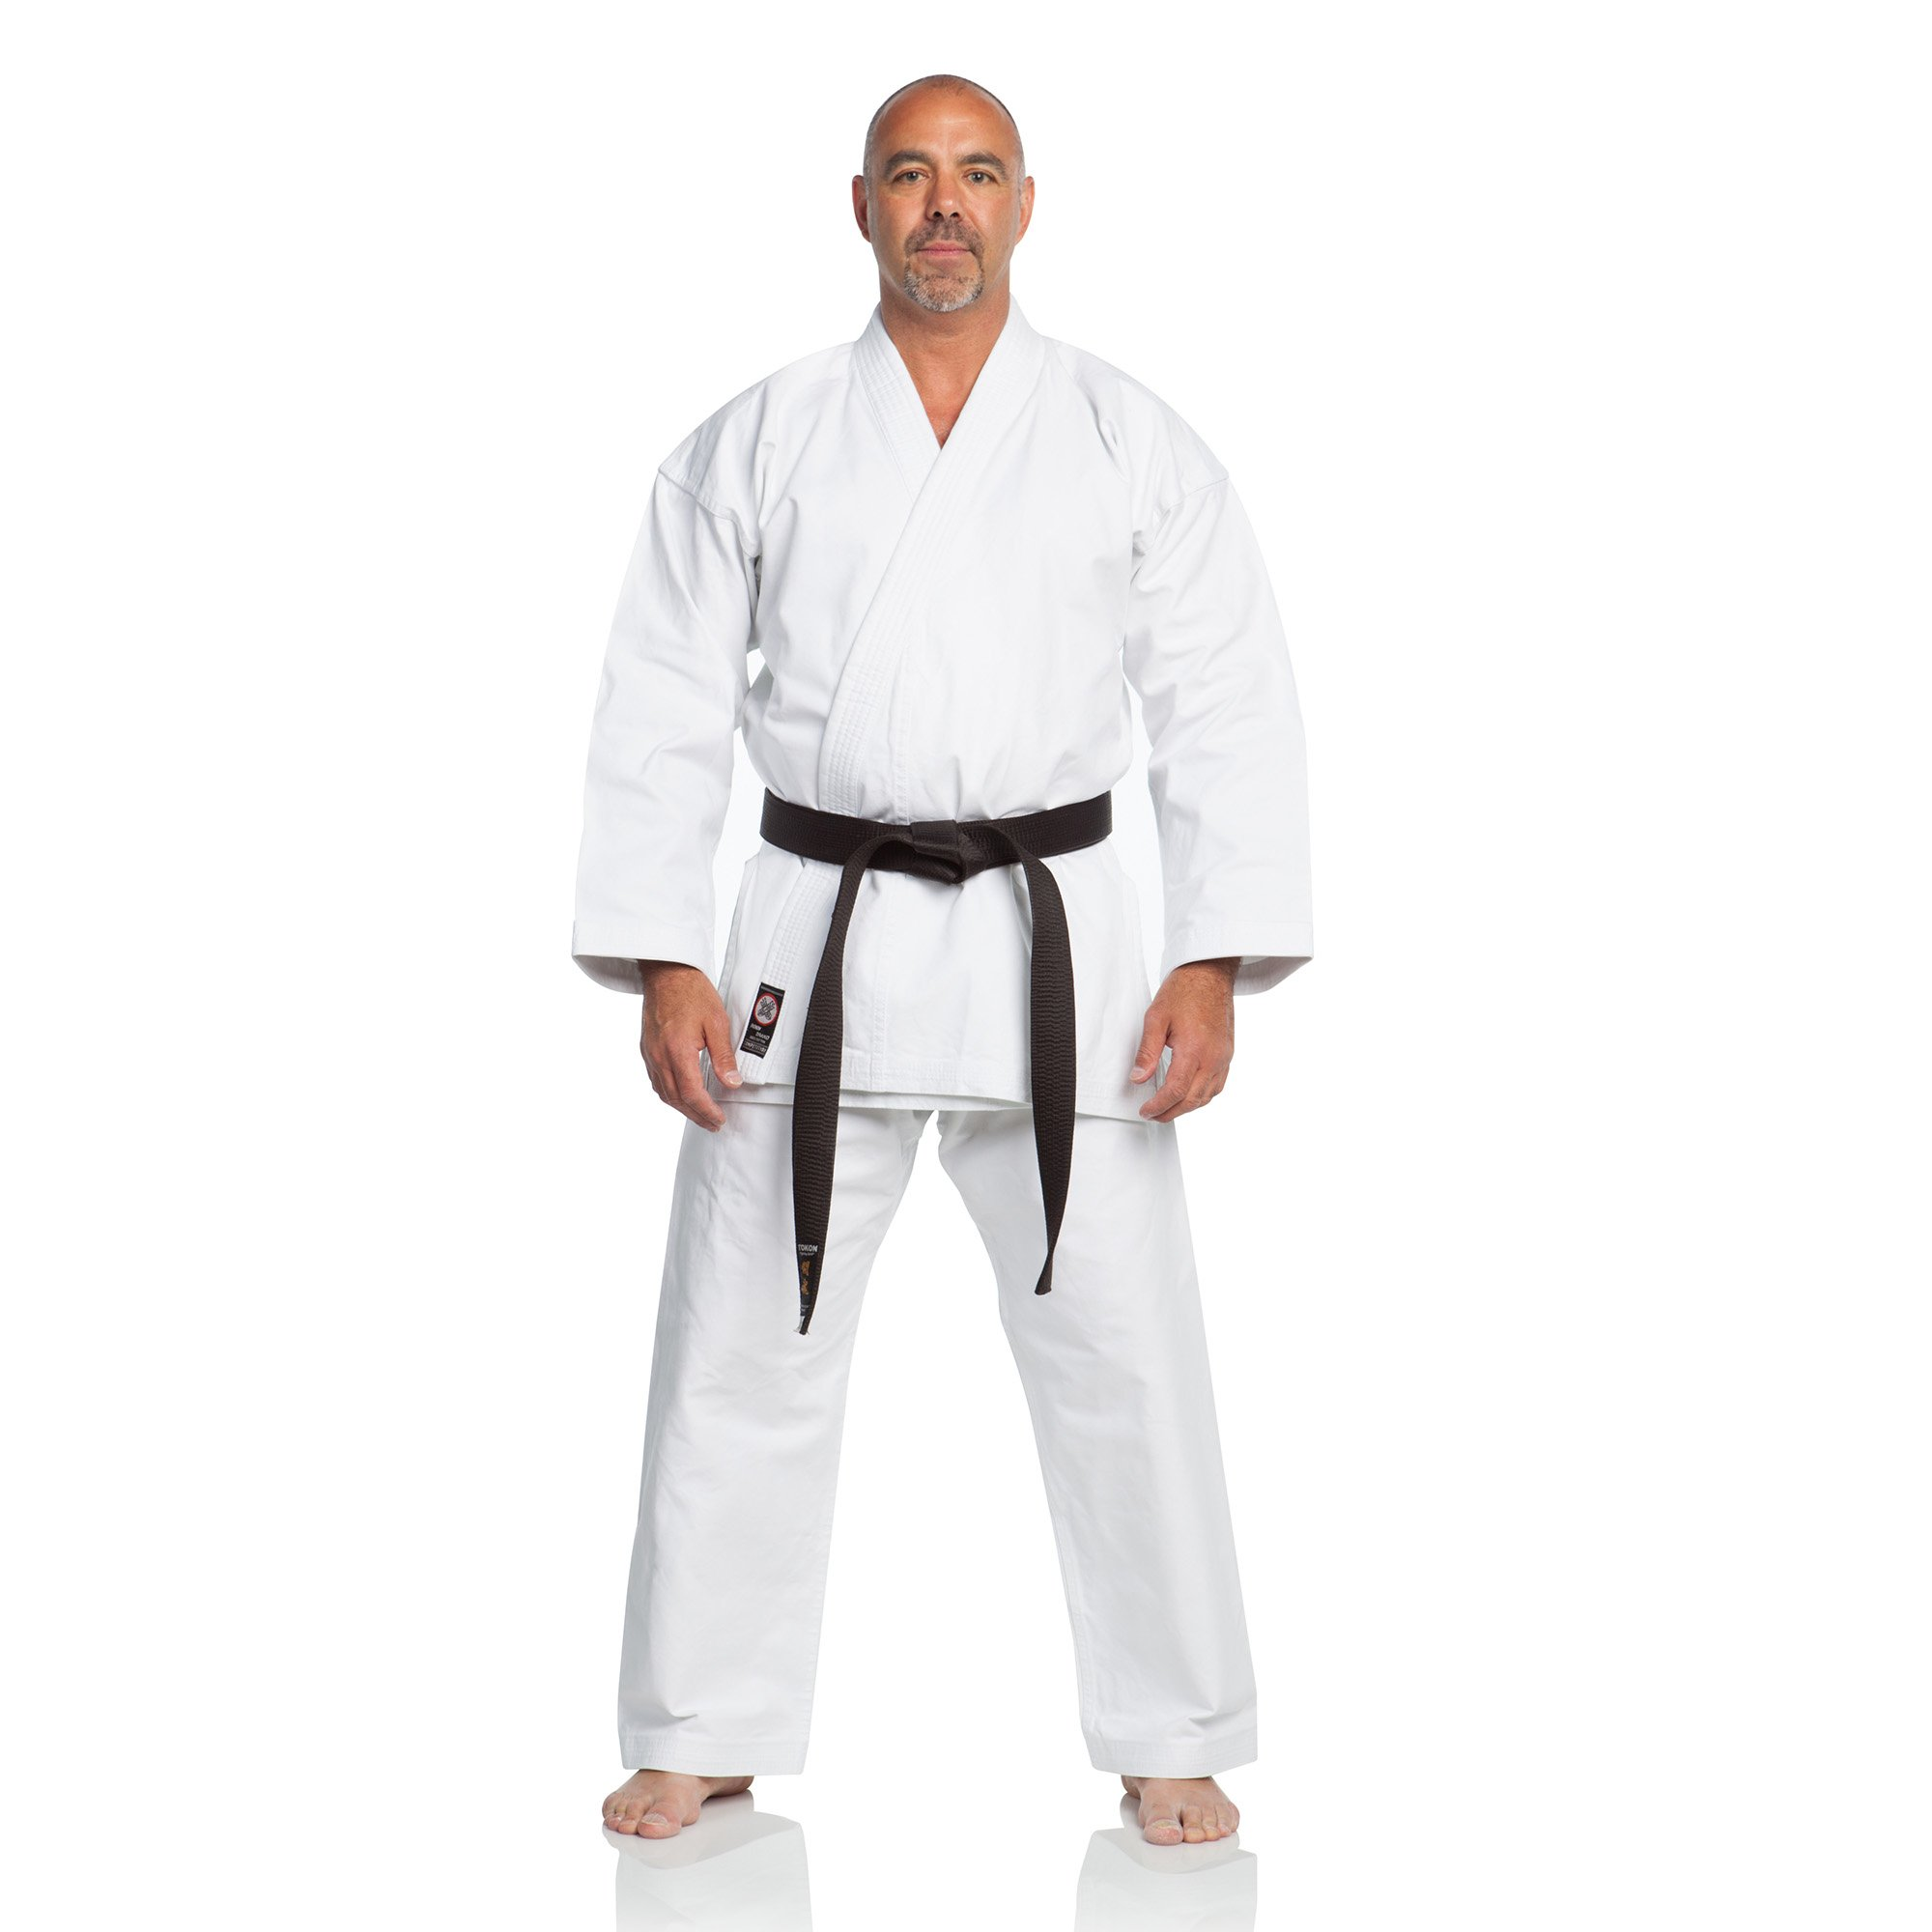 Ronin Brand 12oz. Traditional Heavyweight Karate Uniform (White, 5) by Ronin Brand